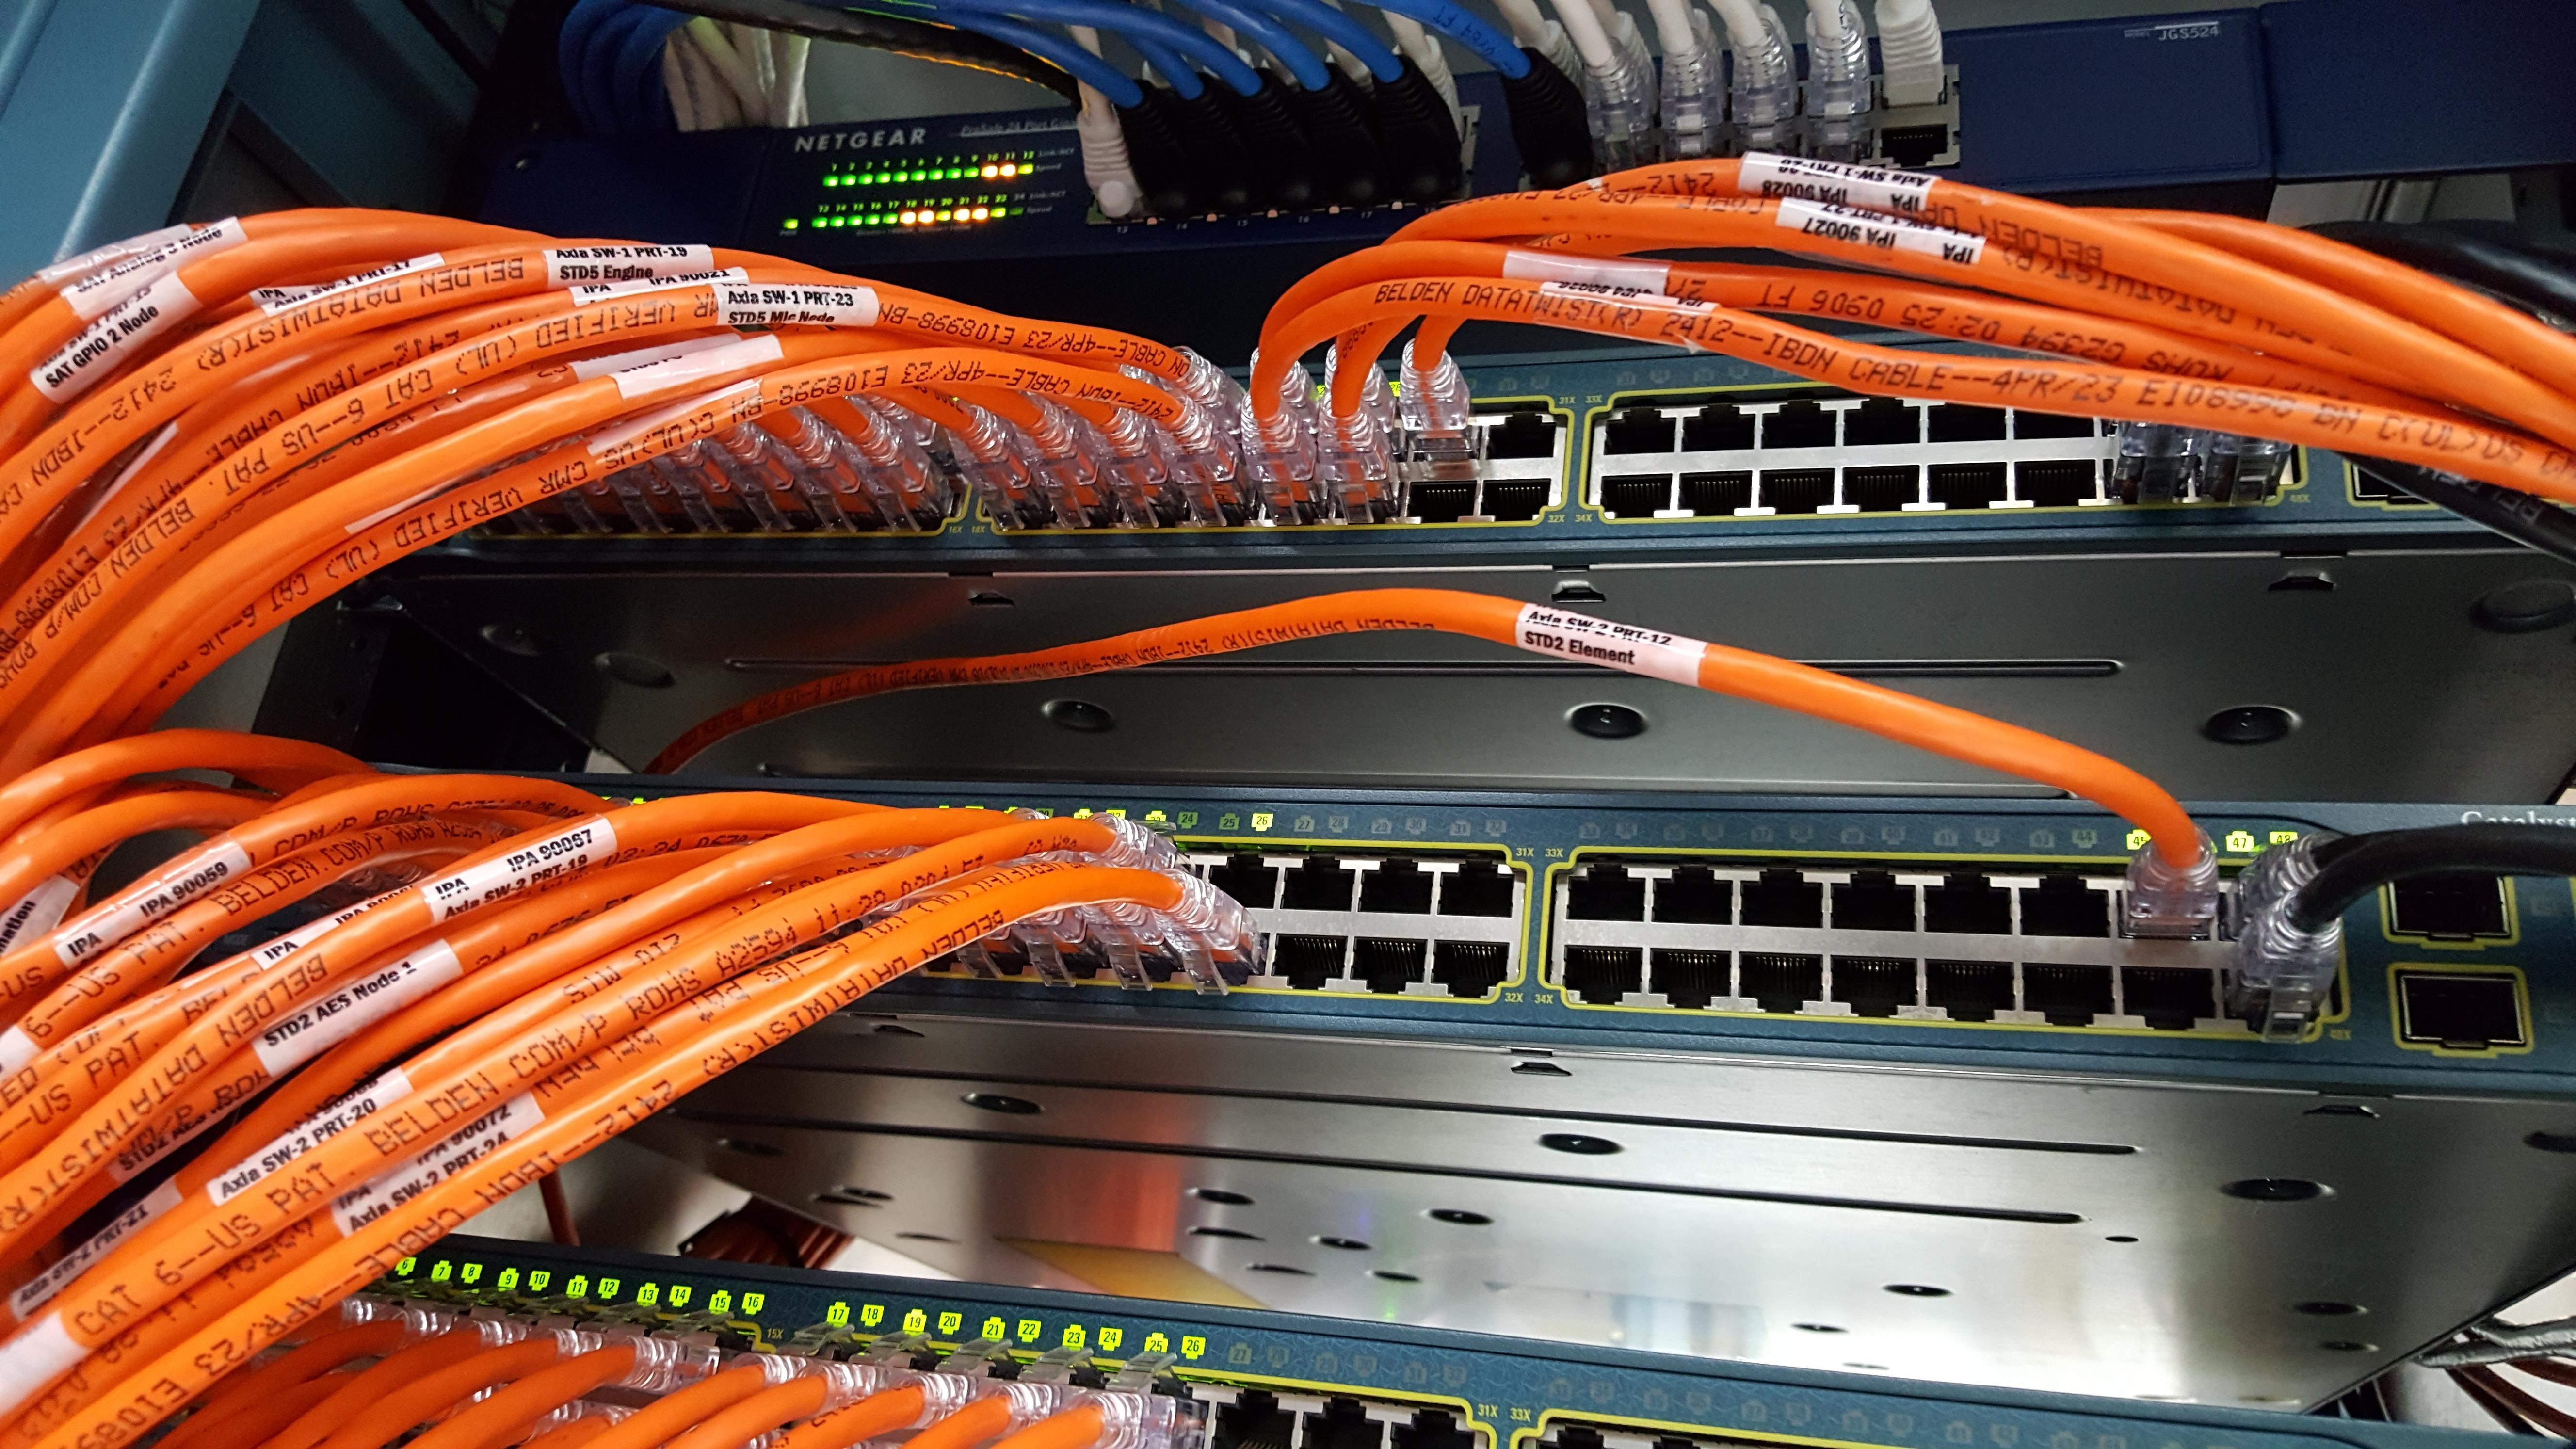 Ethernet cabling on Cisco Ethernet switch at E.W. Scripps Tucson